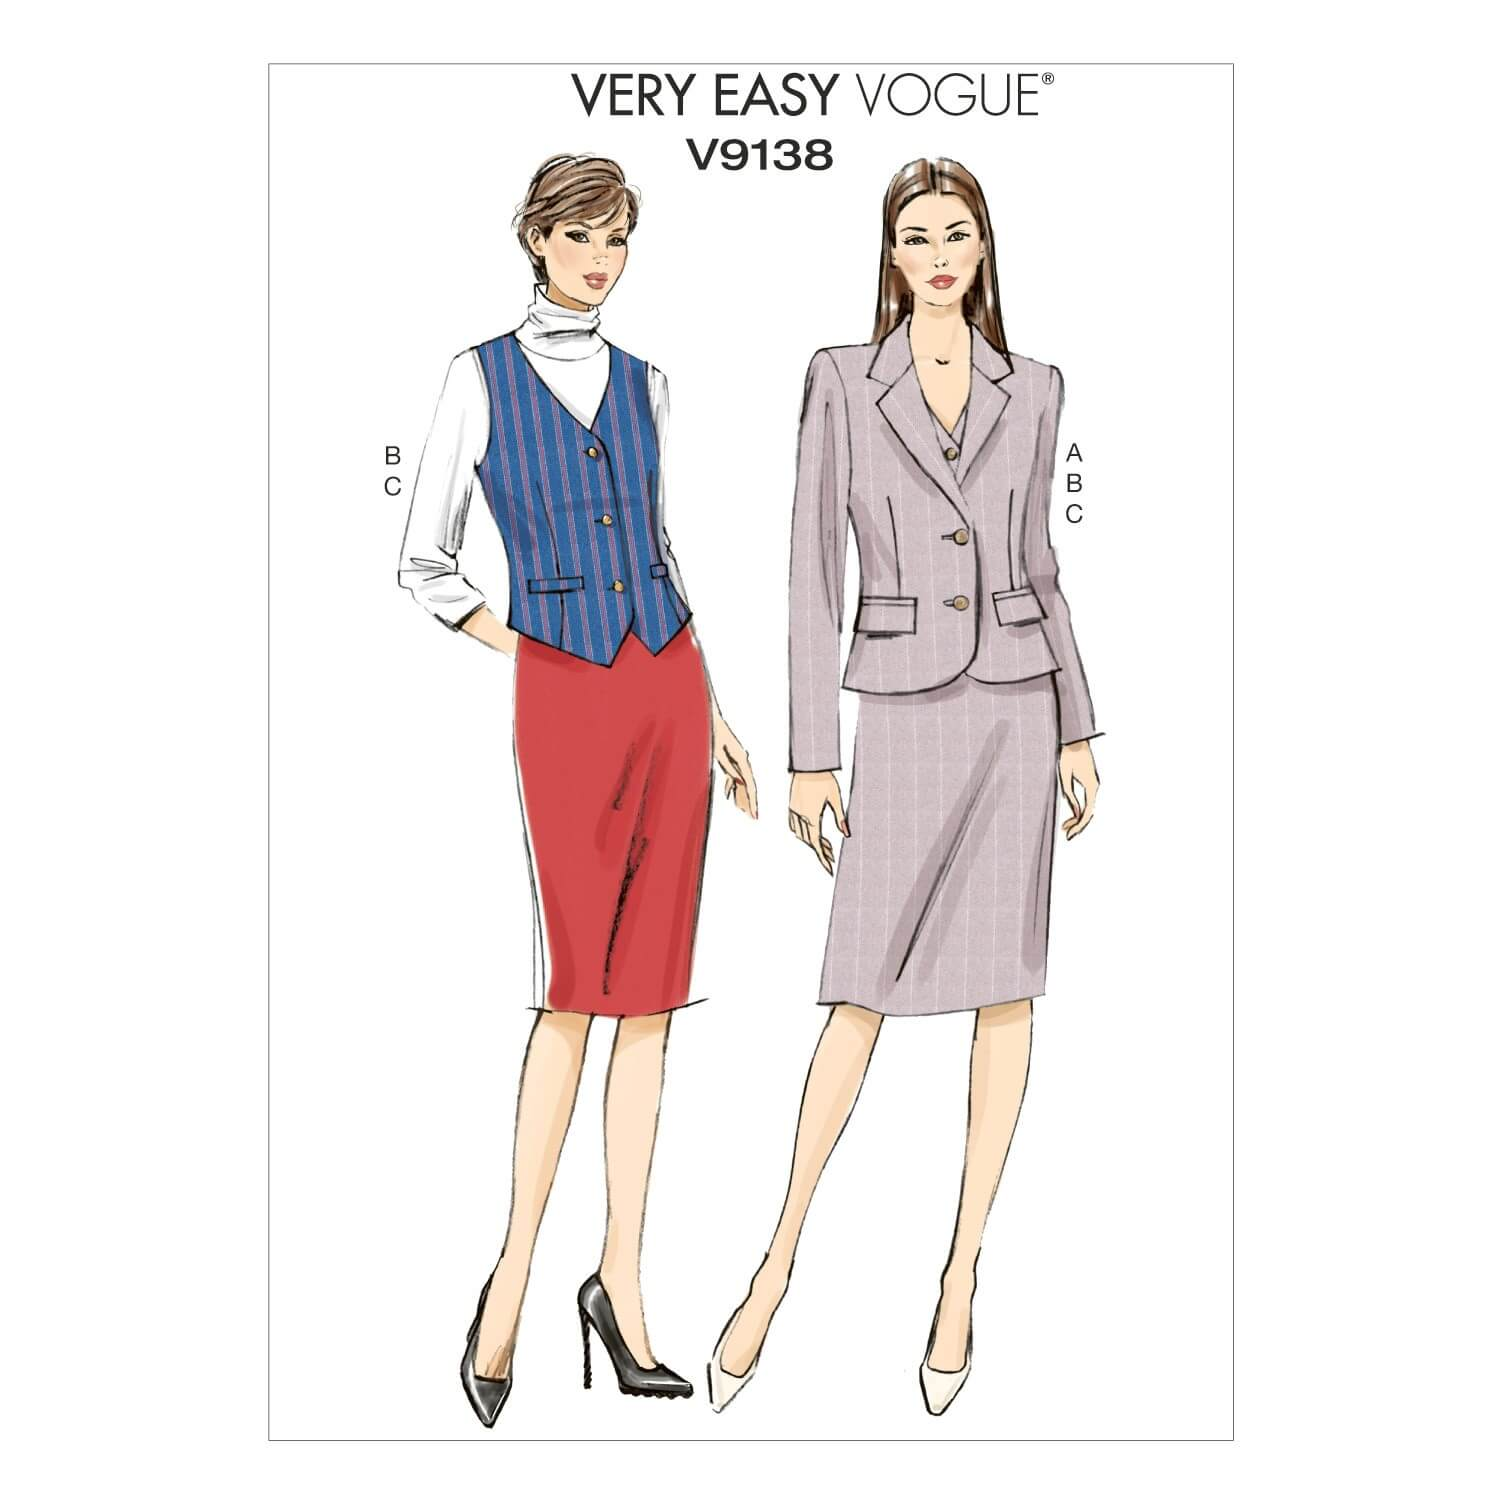 Vogue Sewing Pattern V9138 Women's Semi-Fitted Jacket Vest And Skirt